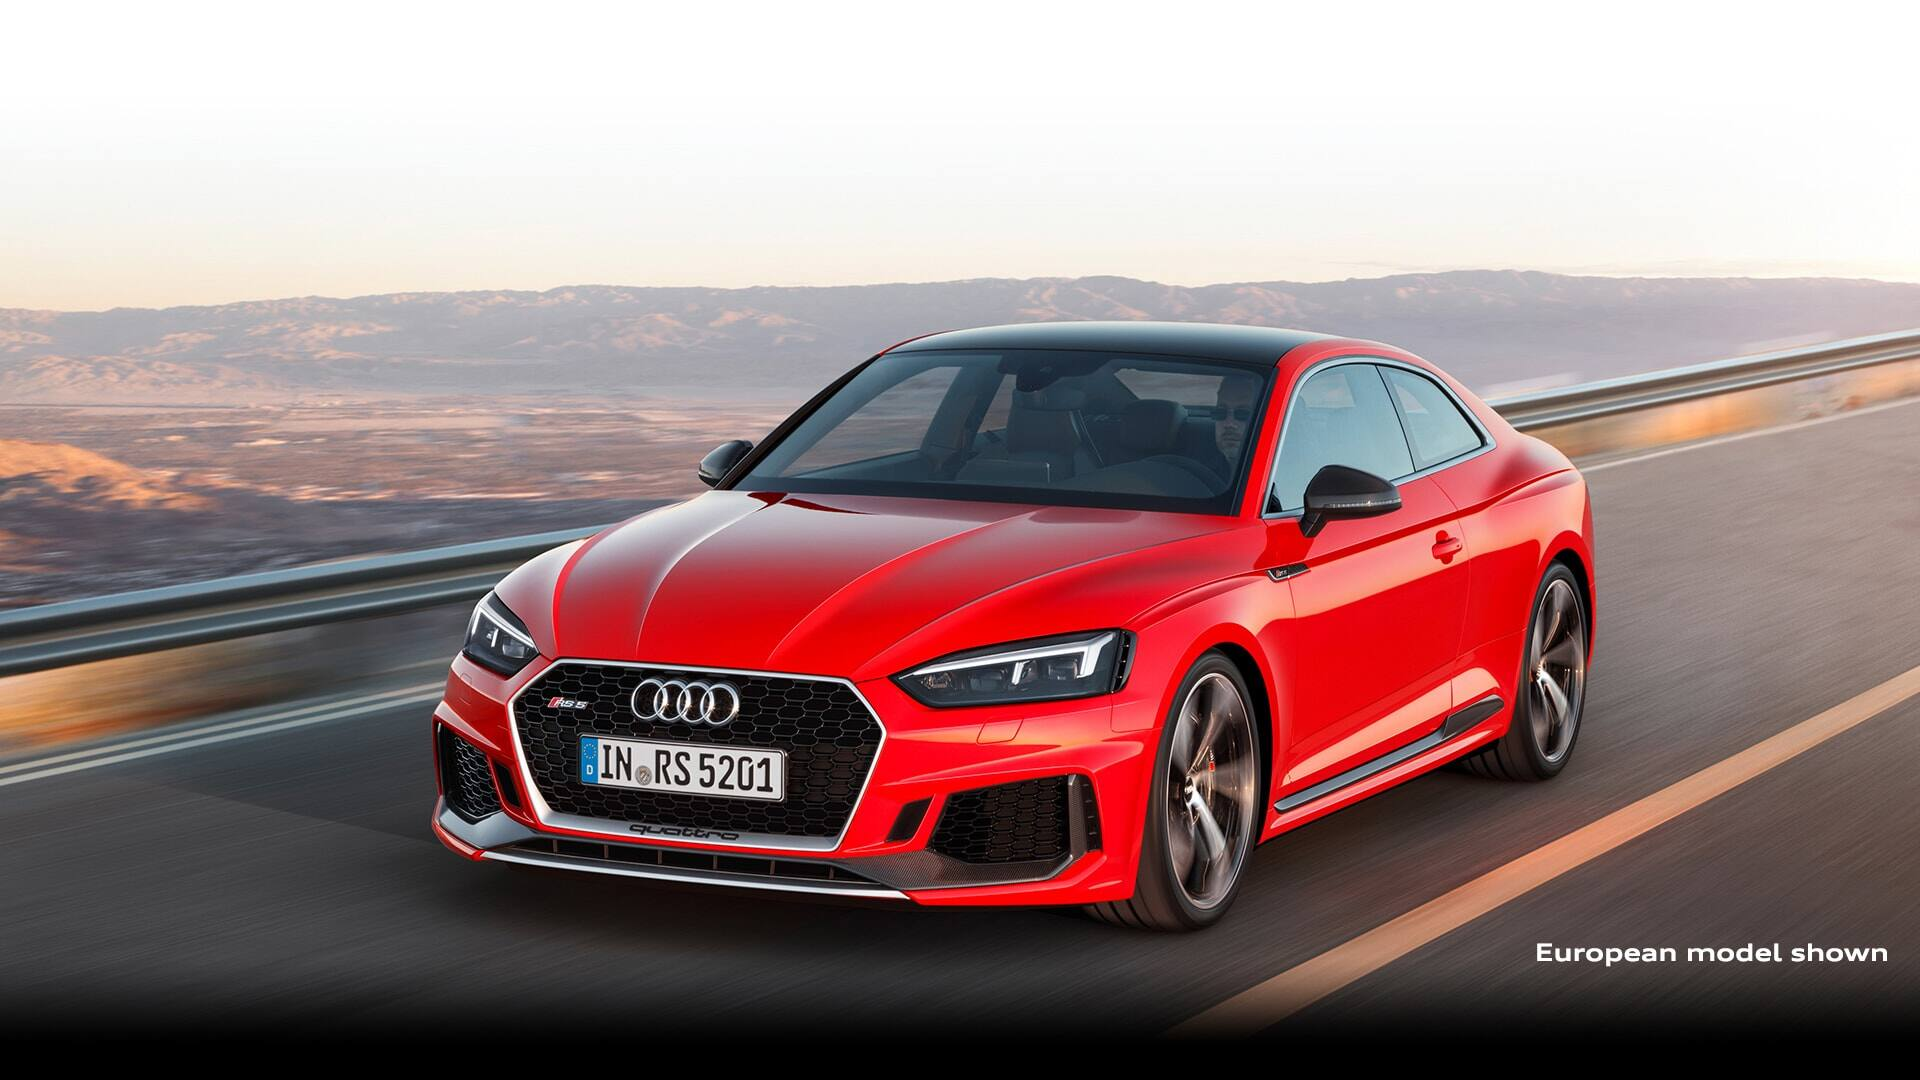 The Audi RS 5 Coupé